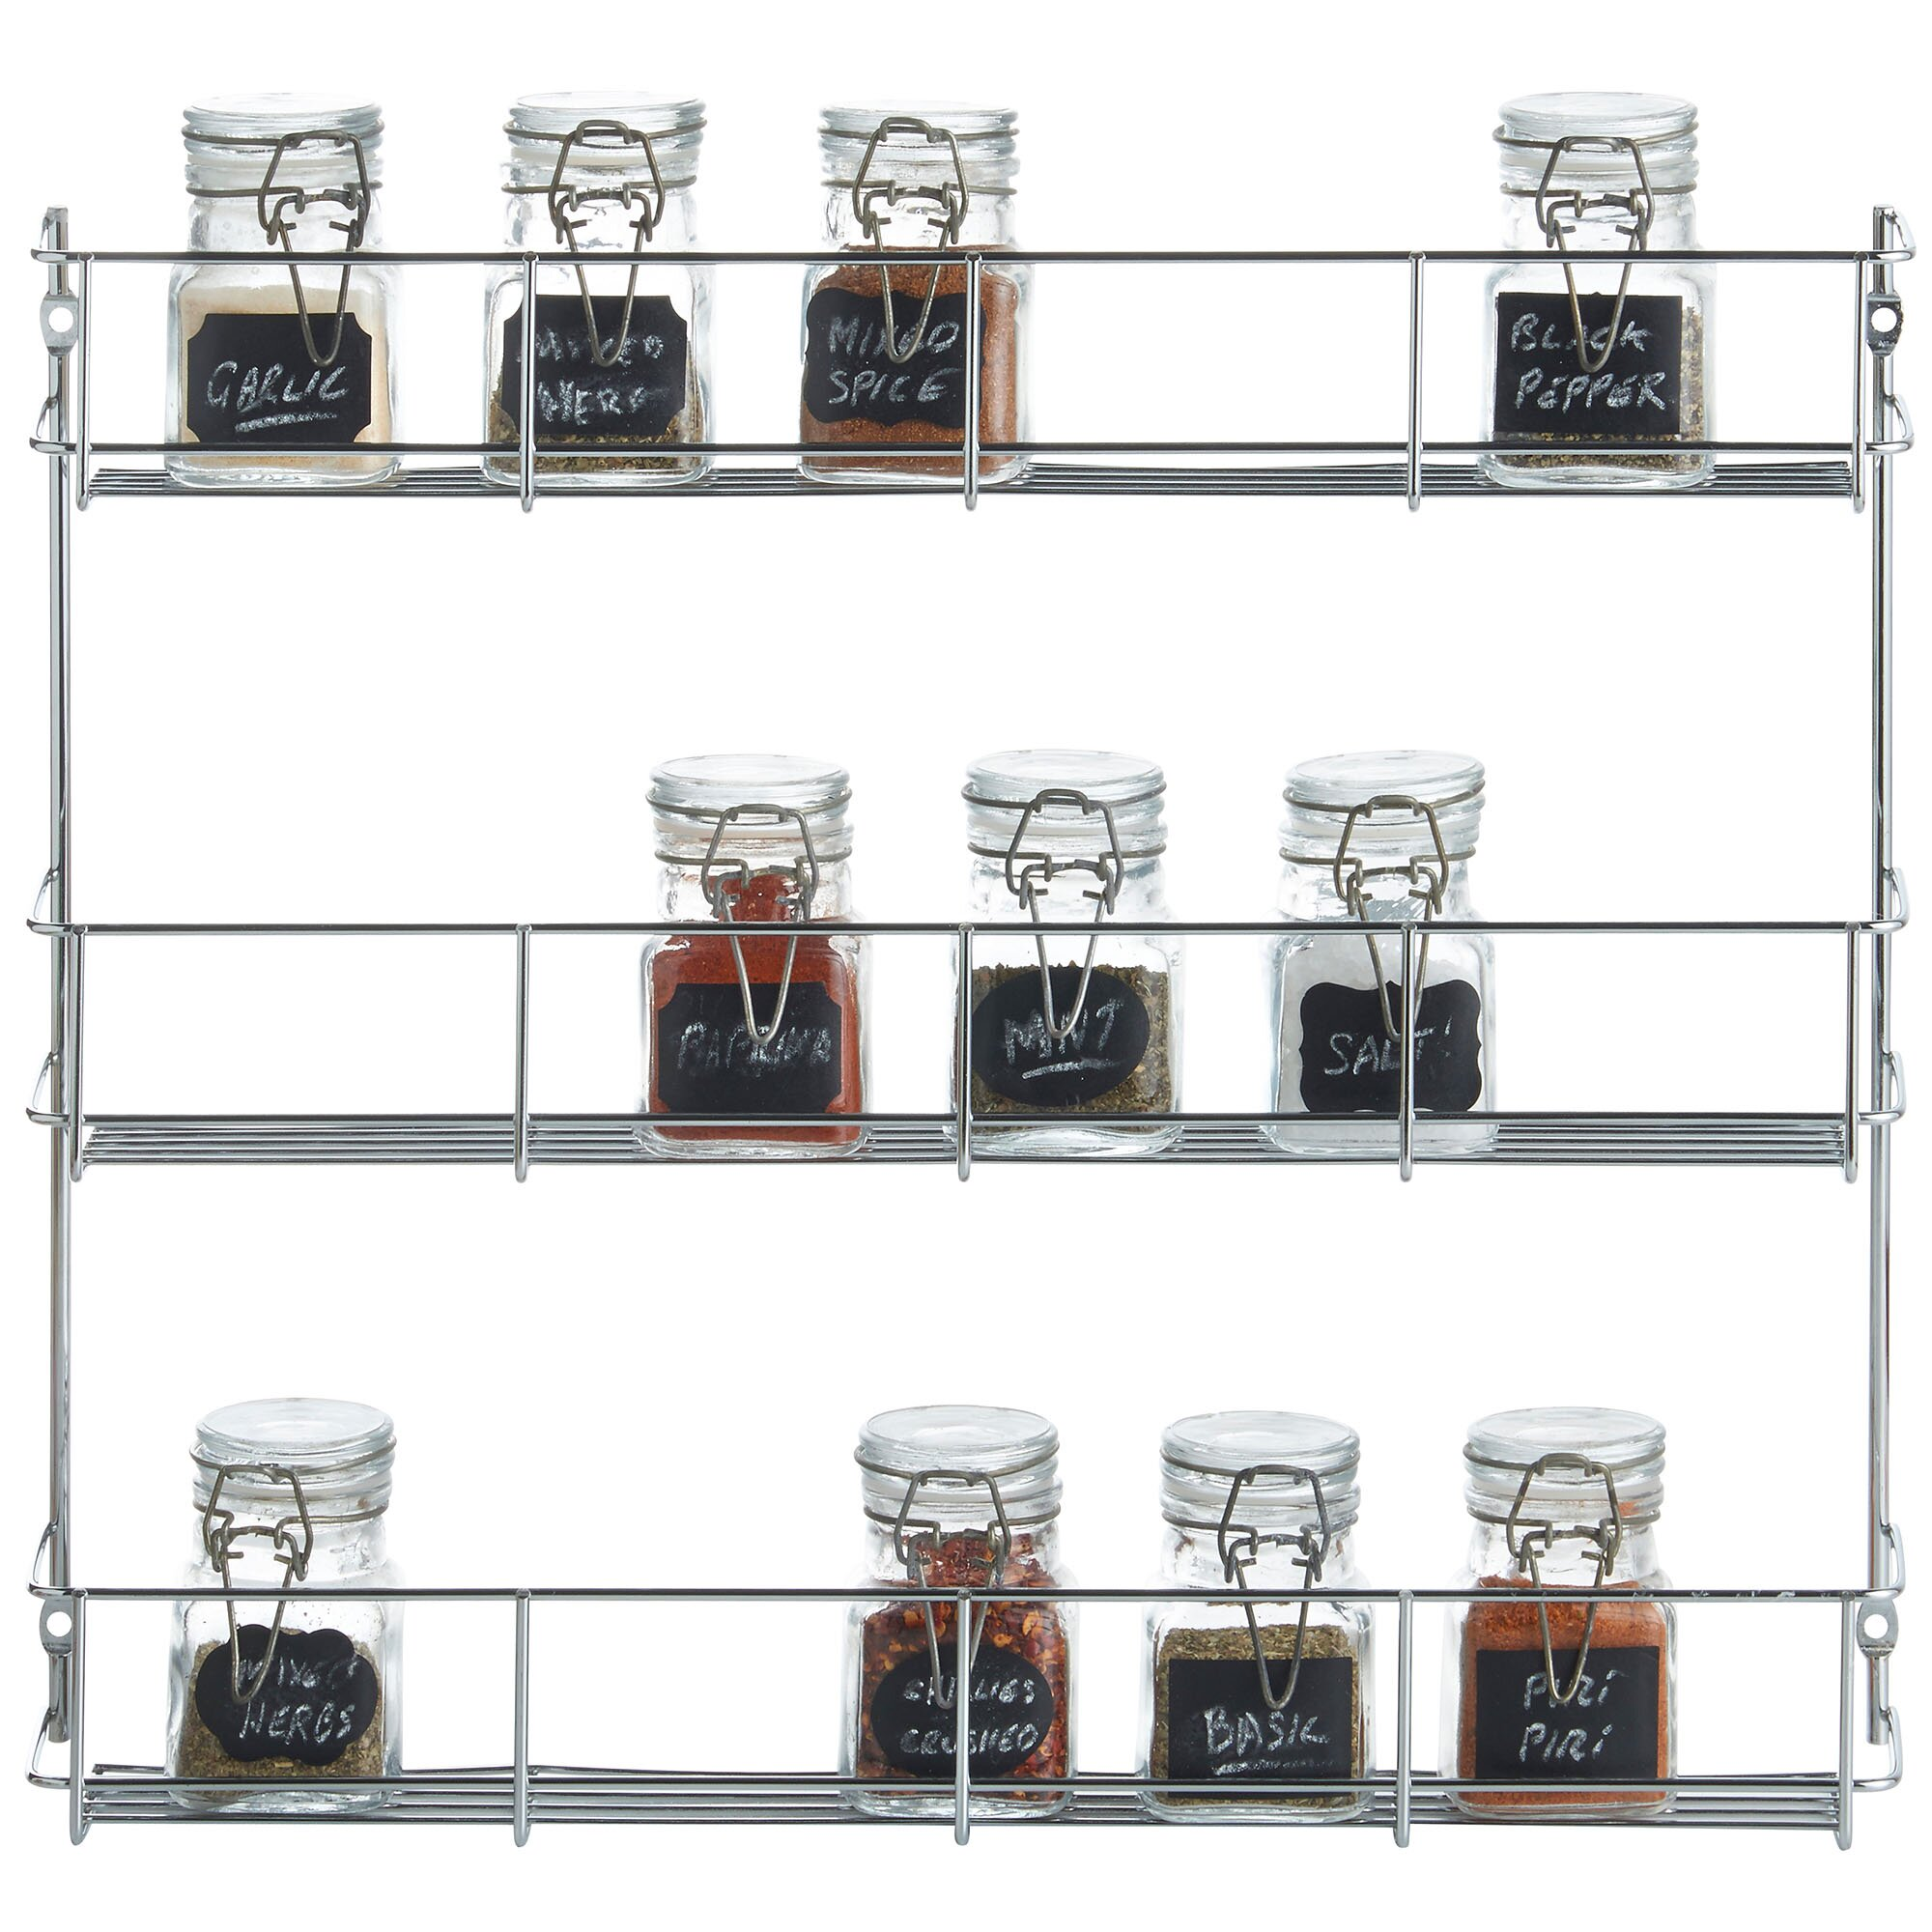 vonshef 3 tier spice rack reviews. Black Bedroom Furniture Sets. Home Design Ideas